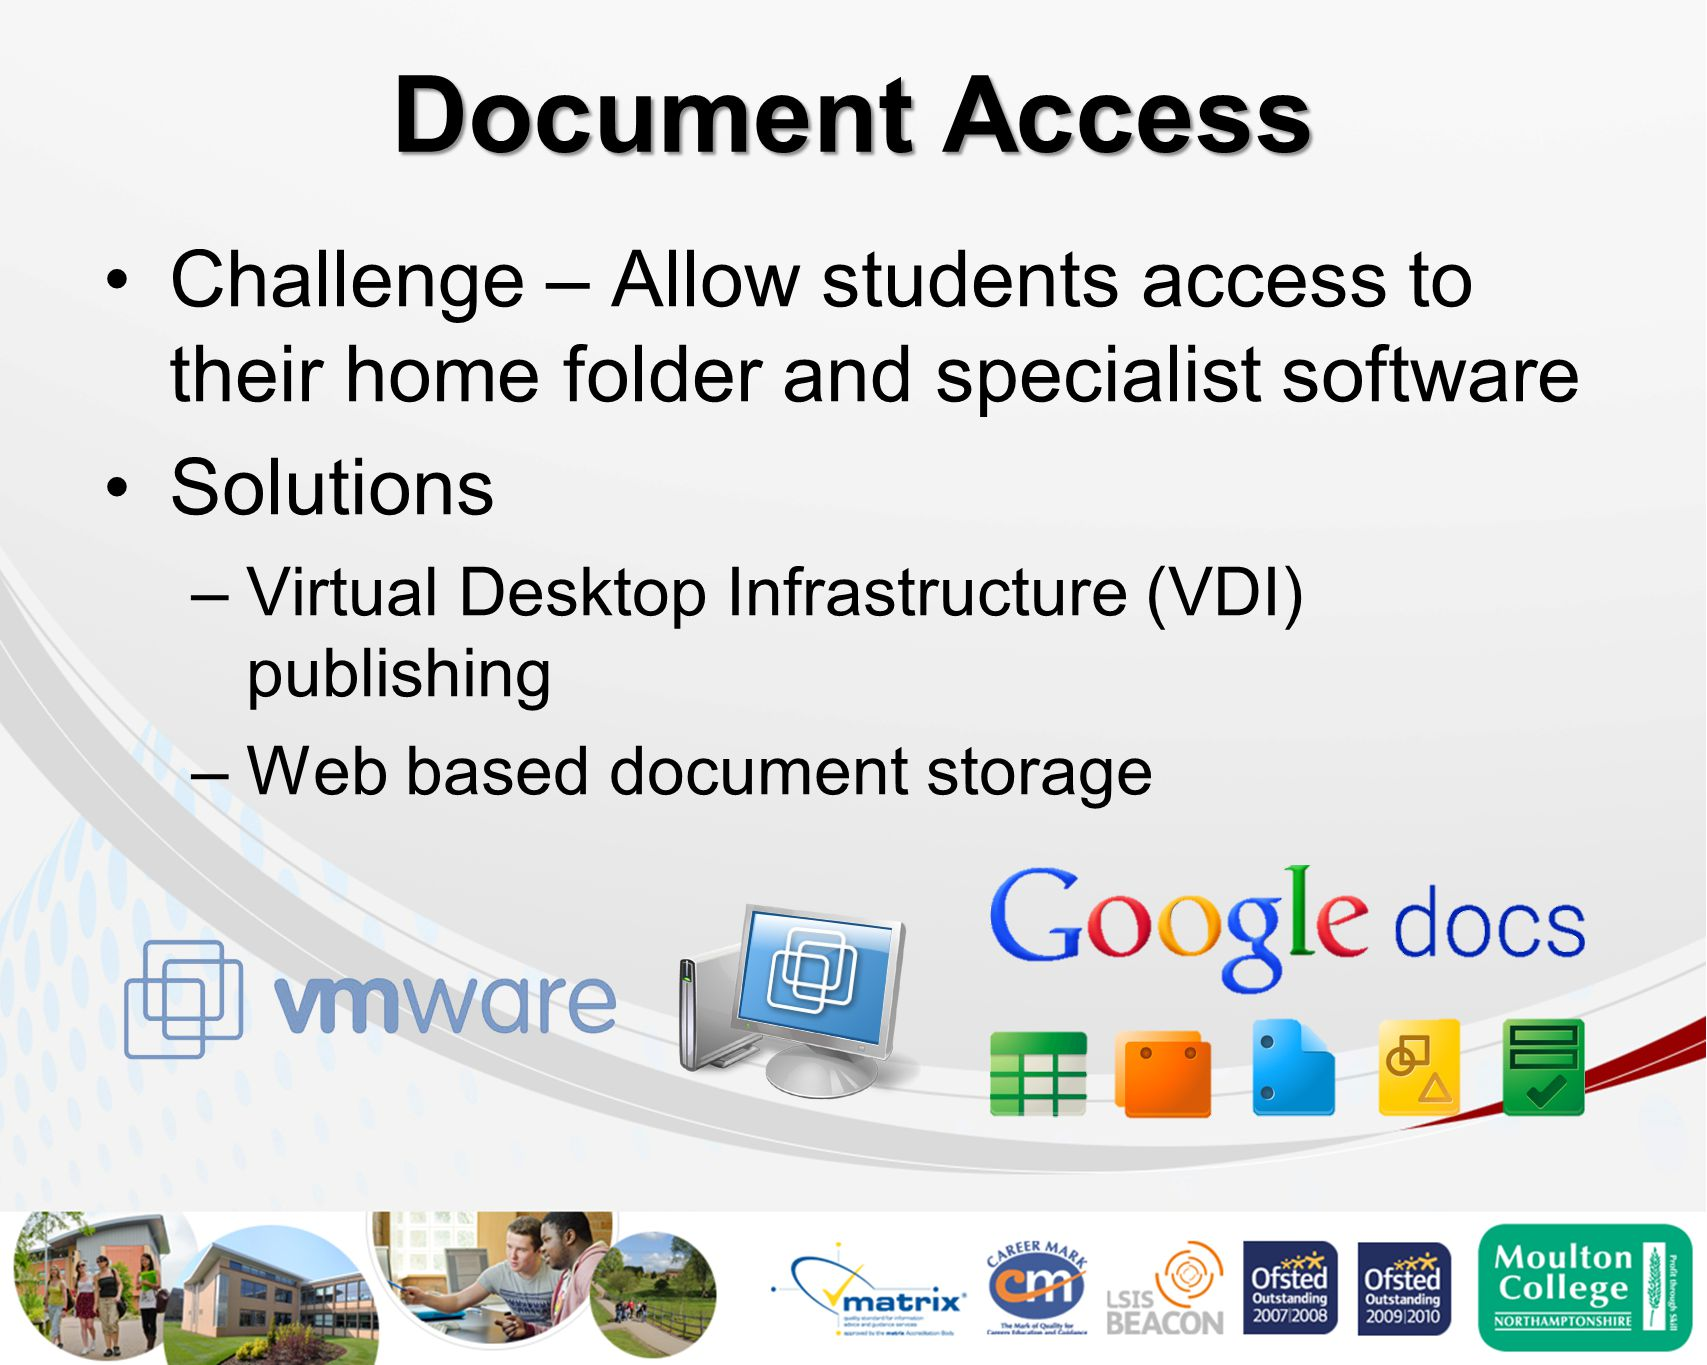 Document Access Challenge – Allow students access to their home folder and specialist software Solutions –Virtual Desktop Infrastructure (VDI) publishing –Web based document storage